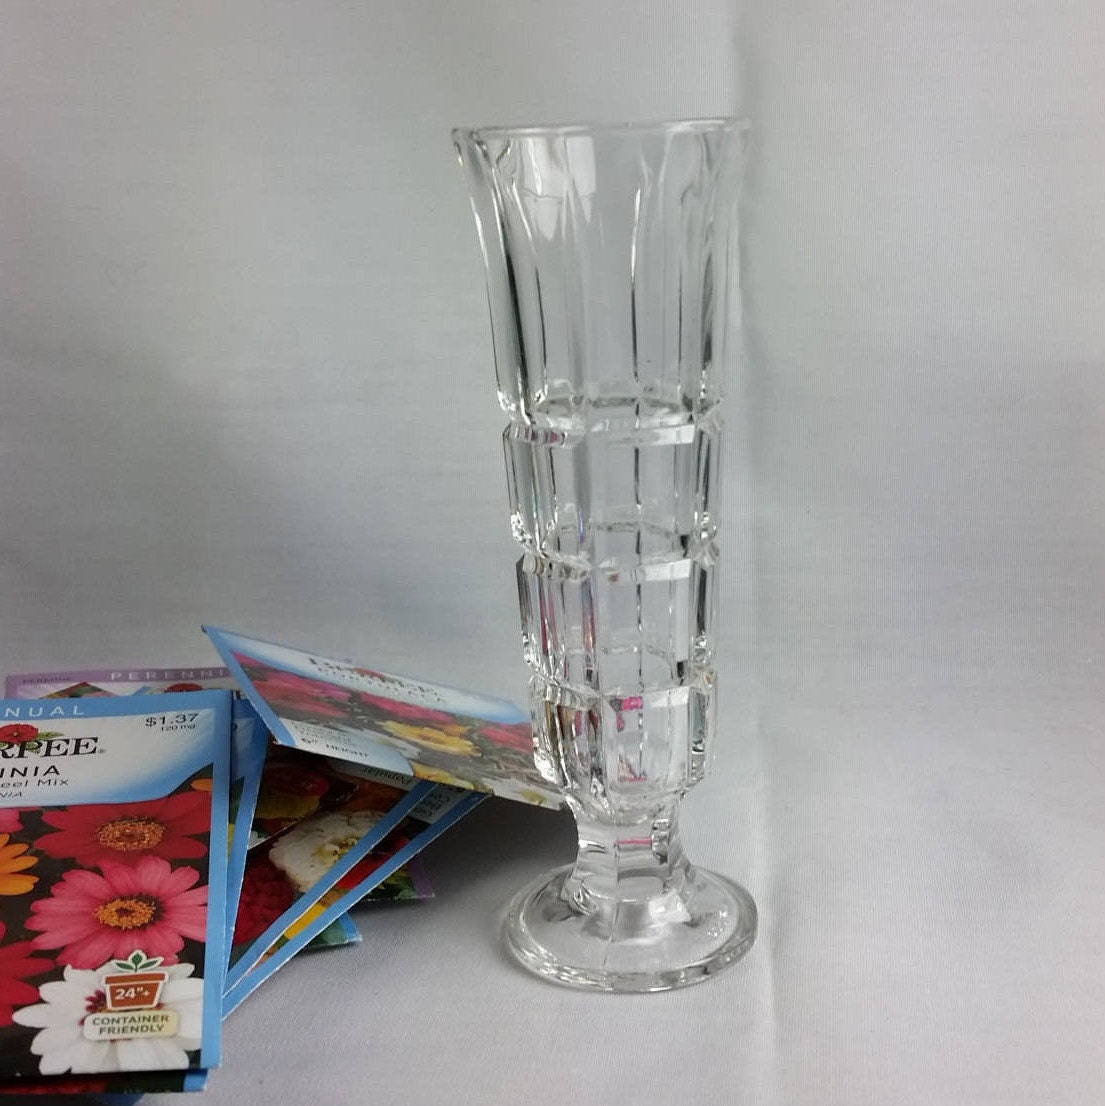 Clear glass bud vase posy vase made in italy small description this small clear glass bud vase reviewsmspy